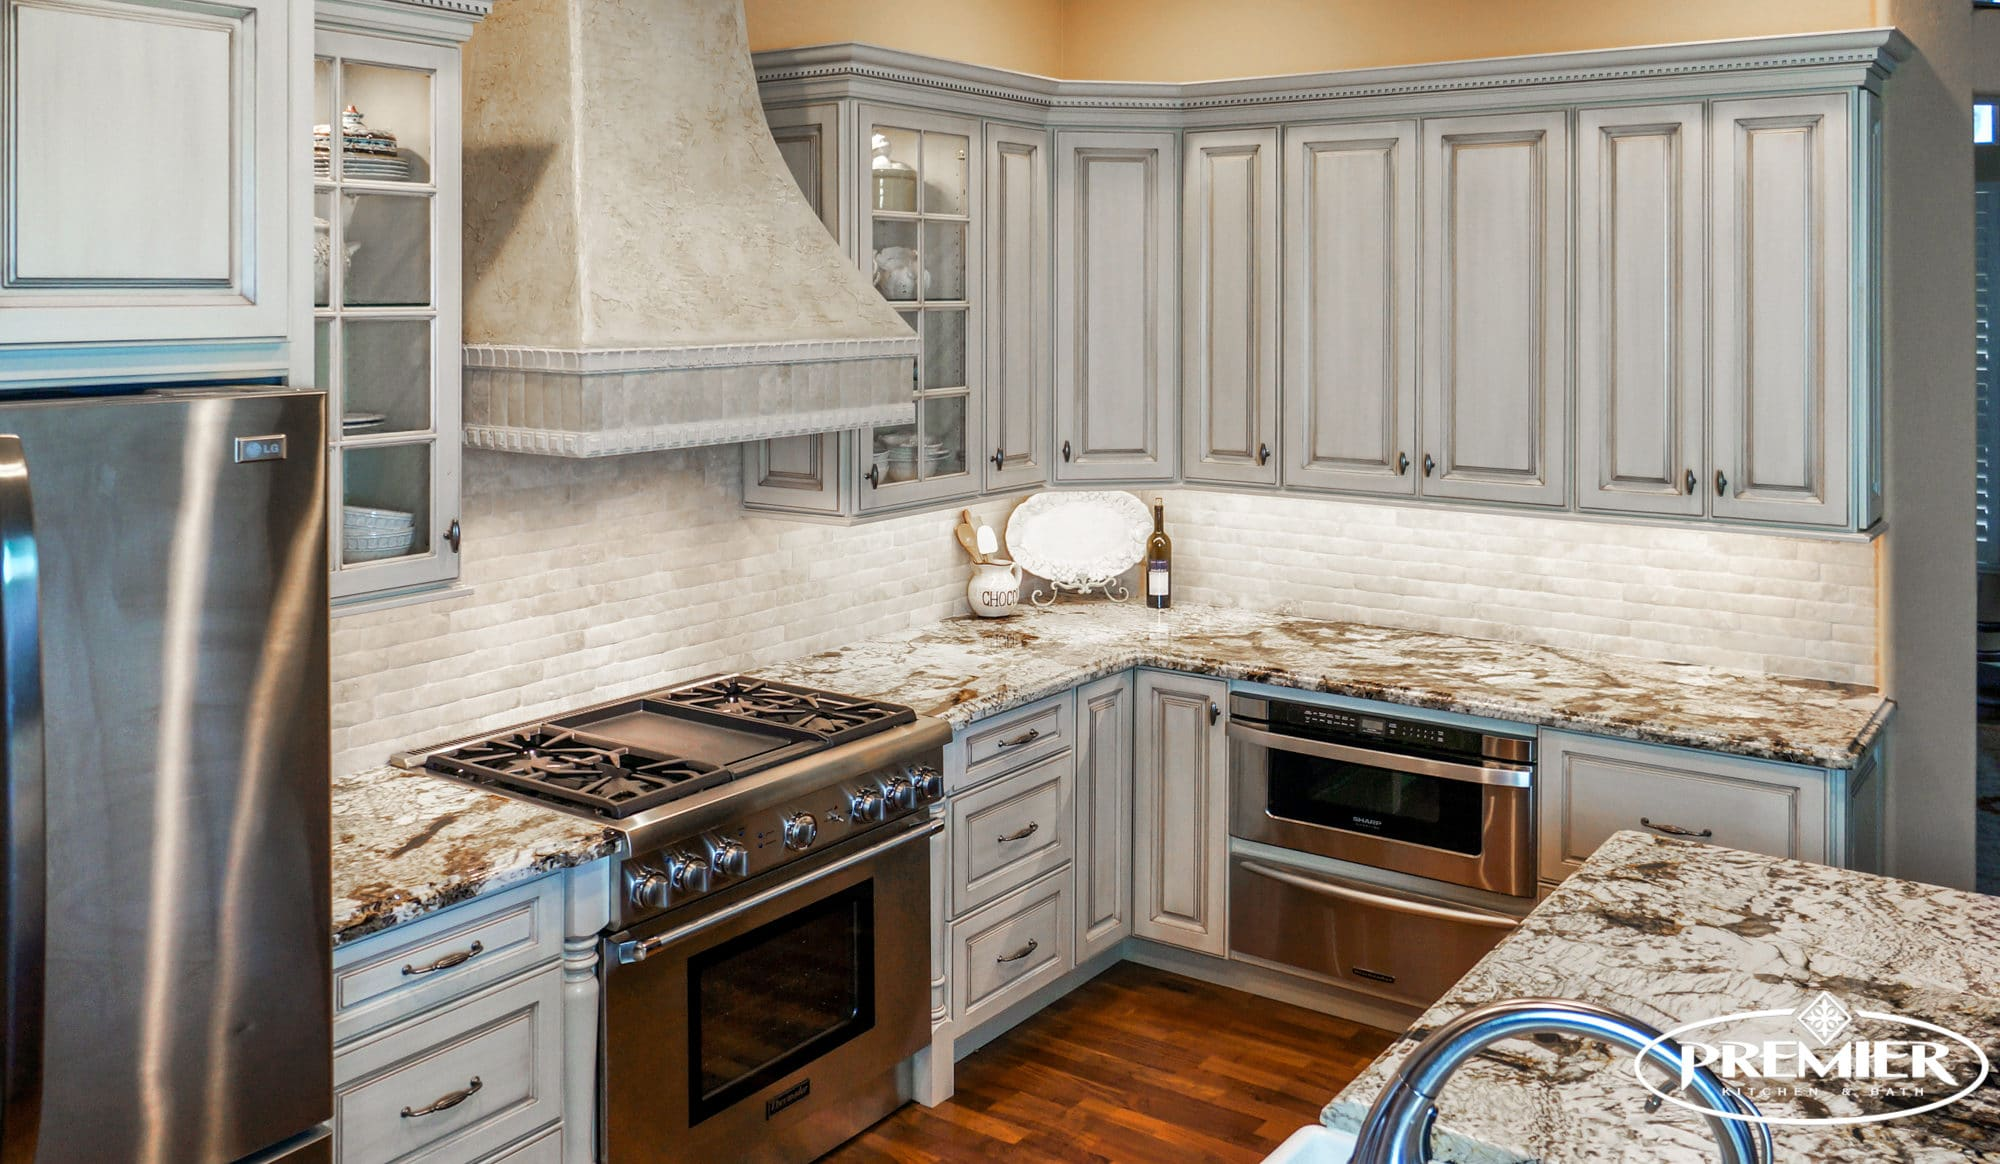 Enjoy Painless Kitchen Remodeling  Bathroom Makeovers  and Other Home  Remodeling Services with Premier Kitchen   Bath in Scottsdale and Phoenix   Arizona. Local Remodeling Contractors   Kitchen Bathroom Remodeling Designers